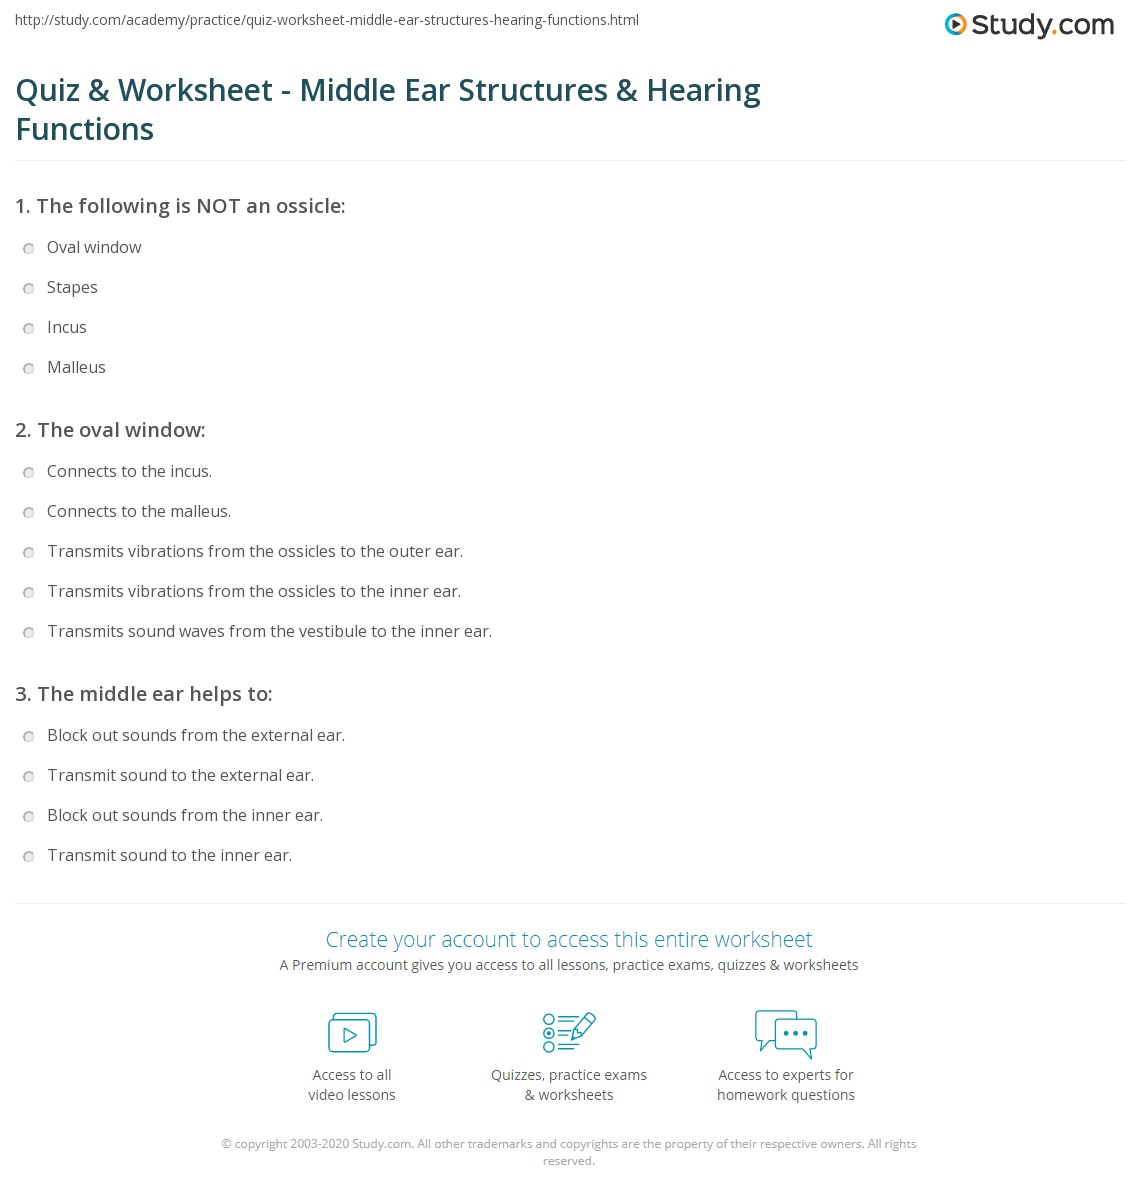 Quiz & Worksheet - Middle Ear Structures & Hearing Functions   Study.com